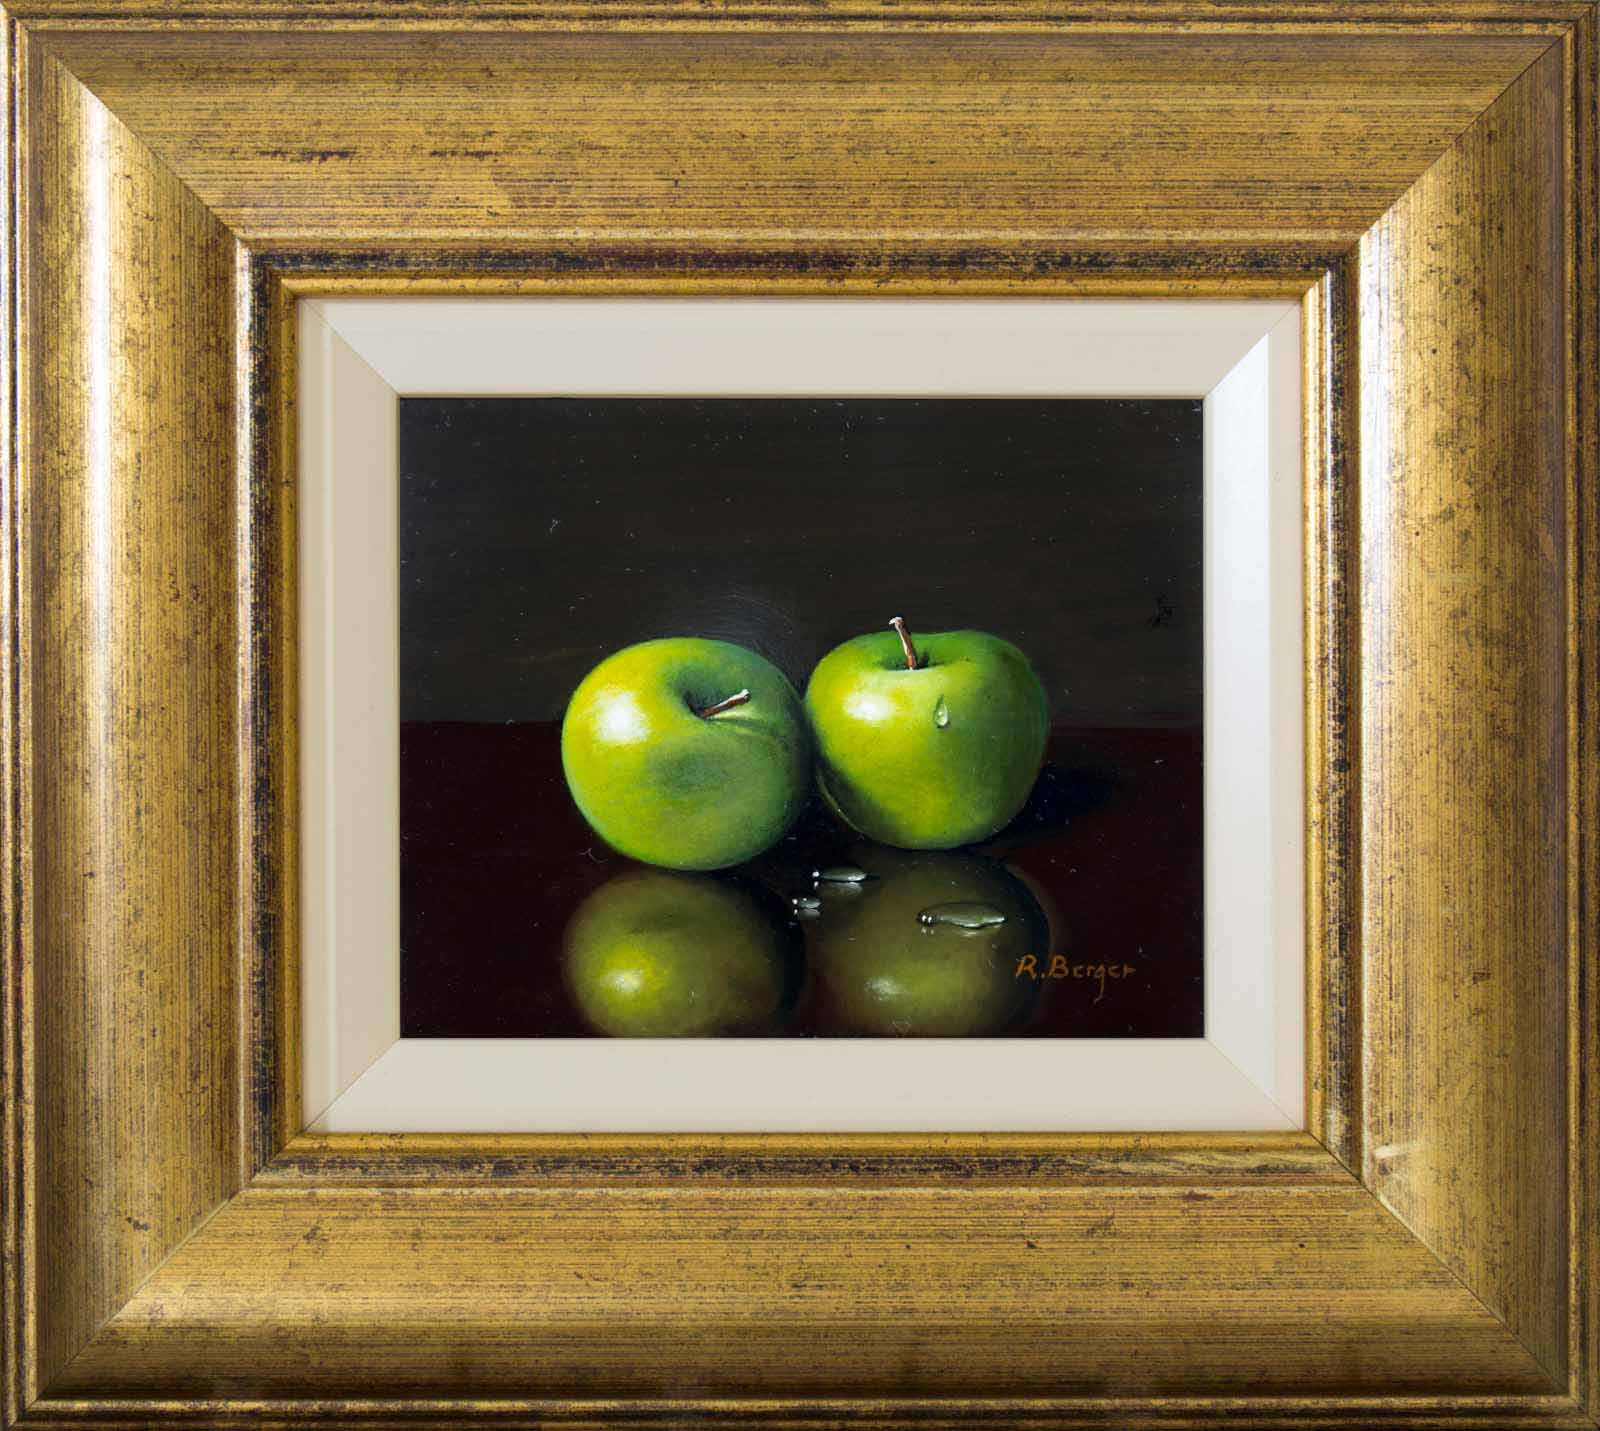 Two Apples, Ronald Berger